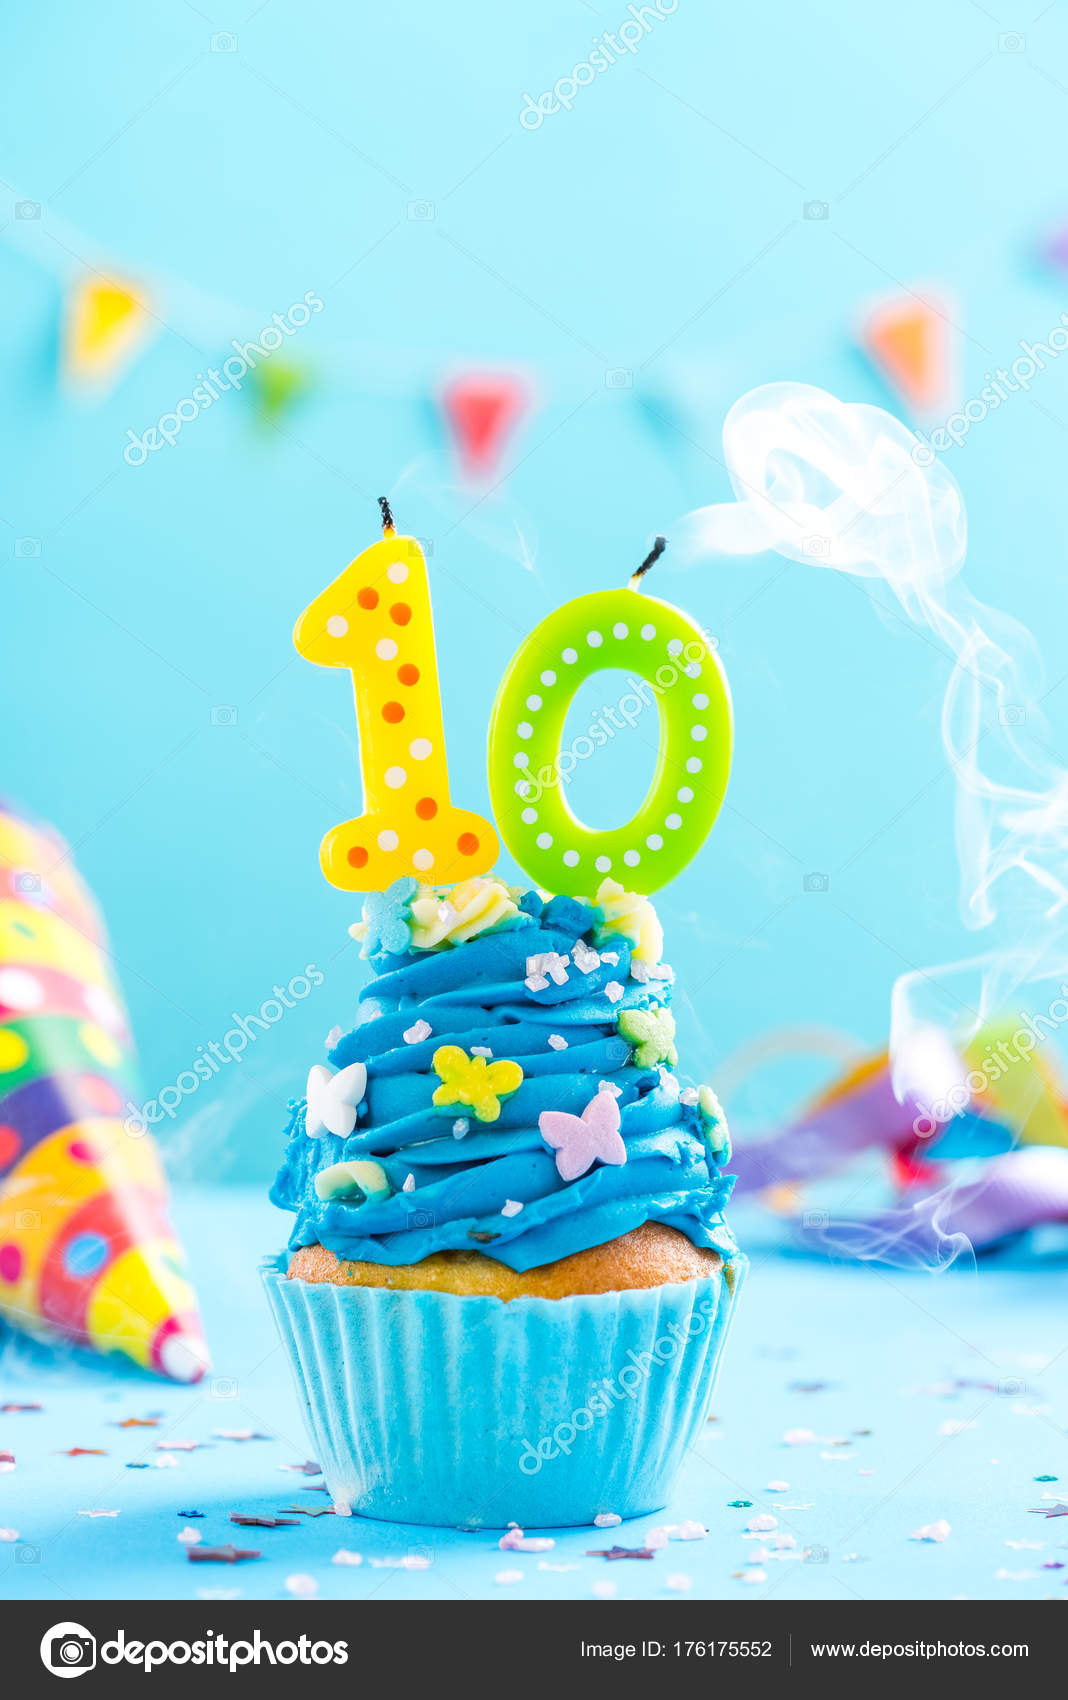 Tenth 10th Birthday Cupcake With Candle Blow OutCard Mockup Stock Photo